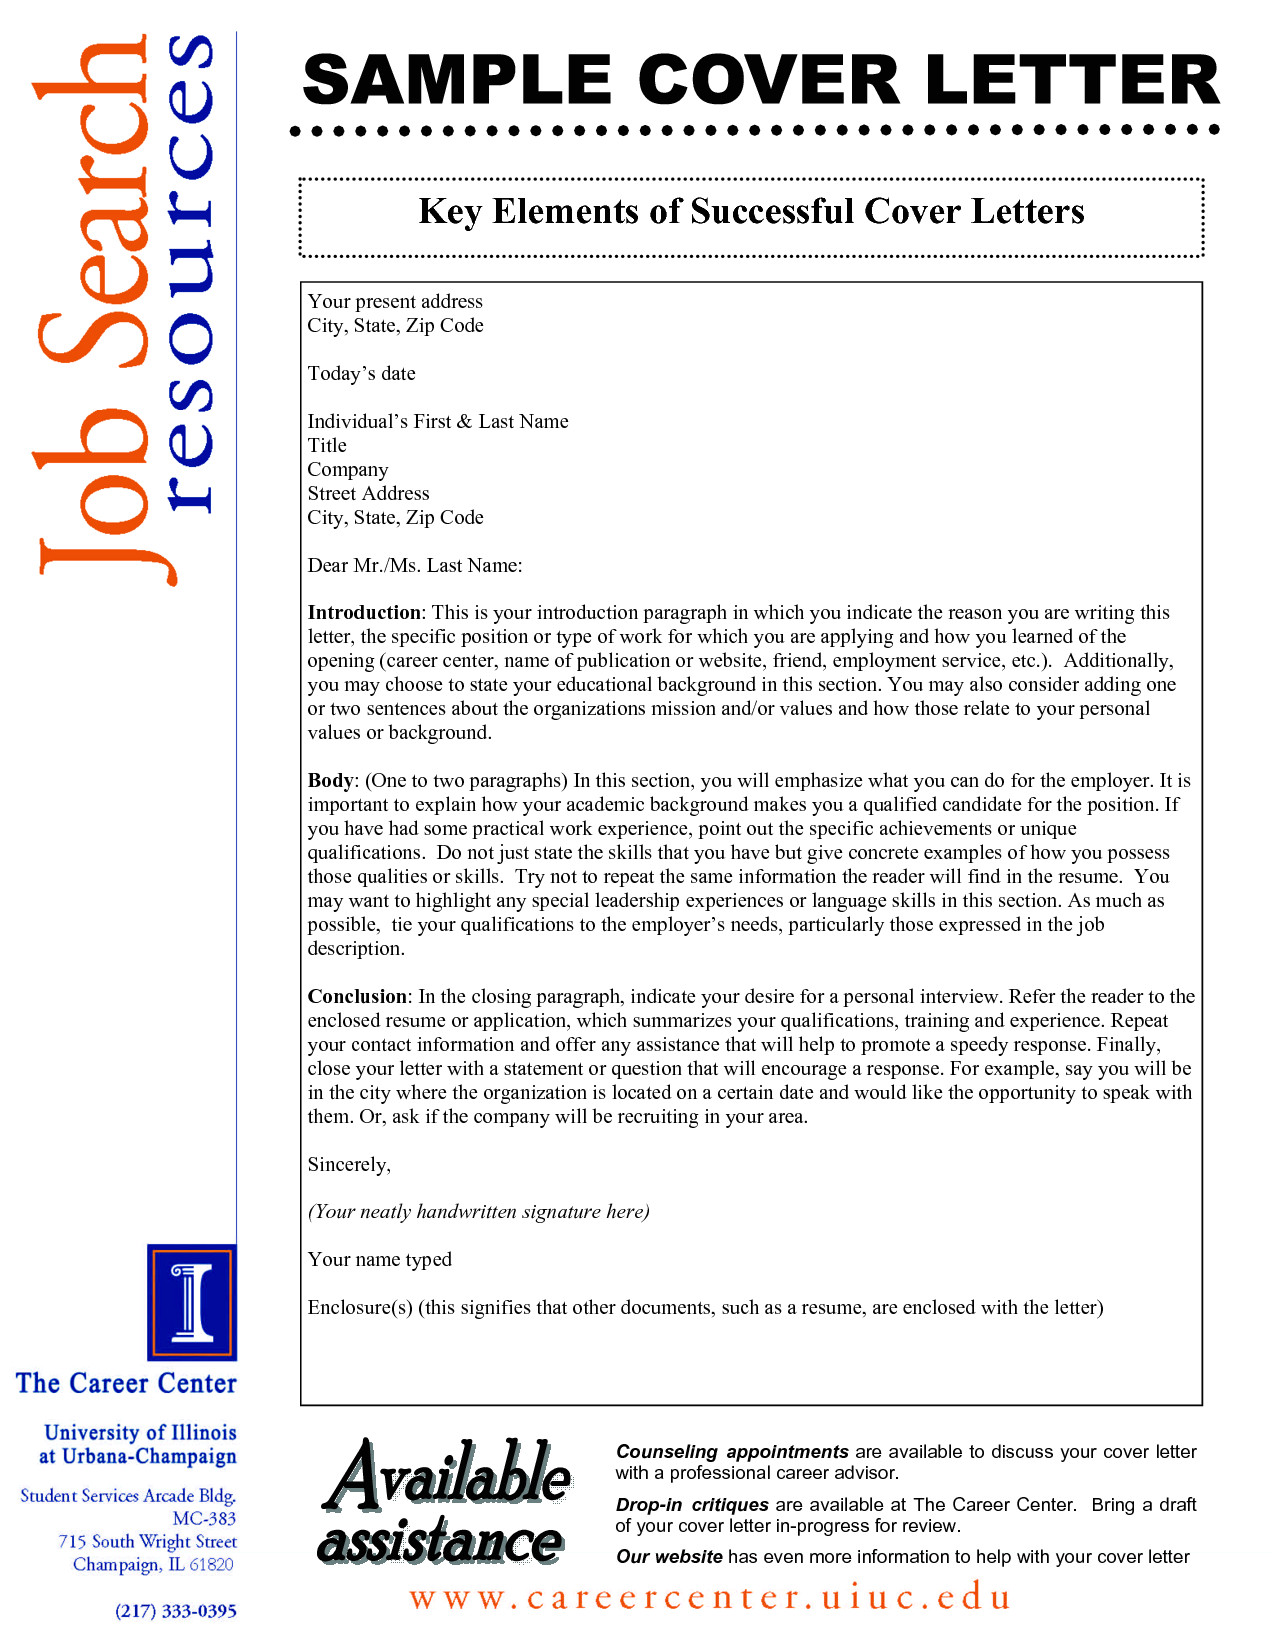 Succesful Cover Letters Best Photos Of Successful Cover Letters Cover Letter